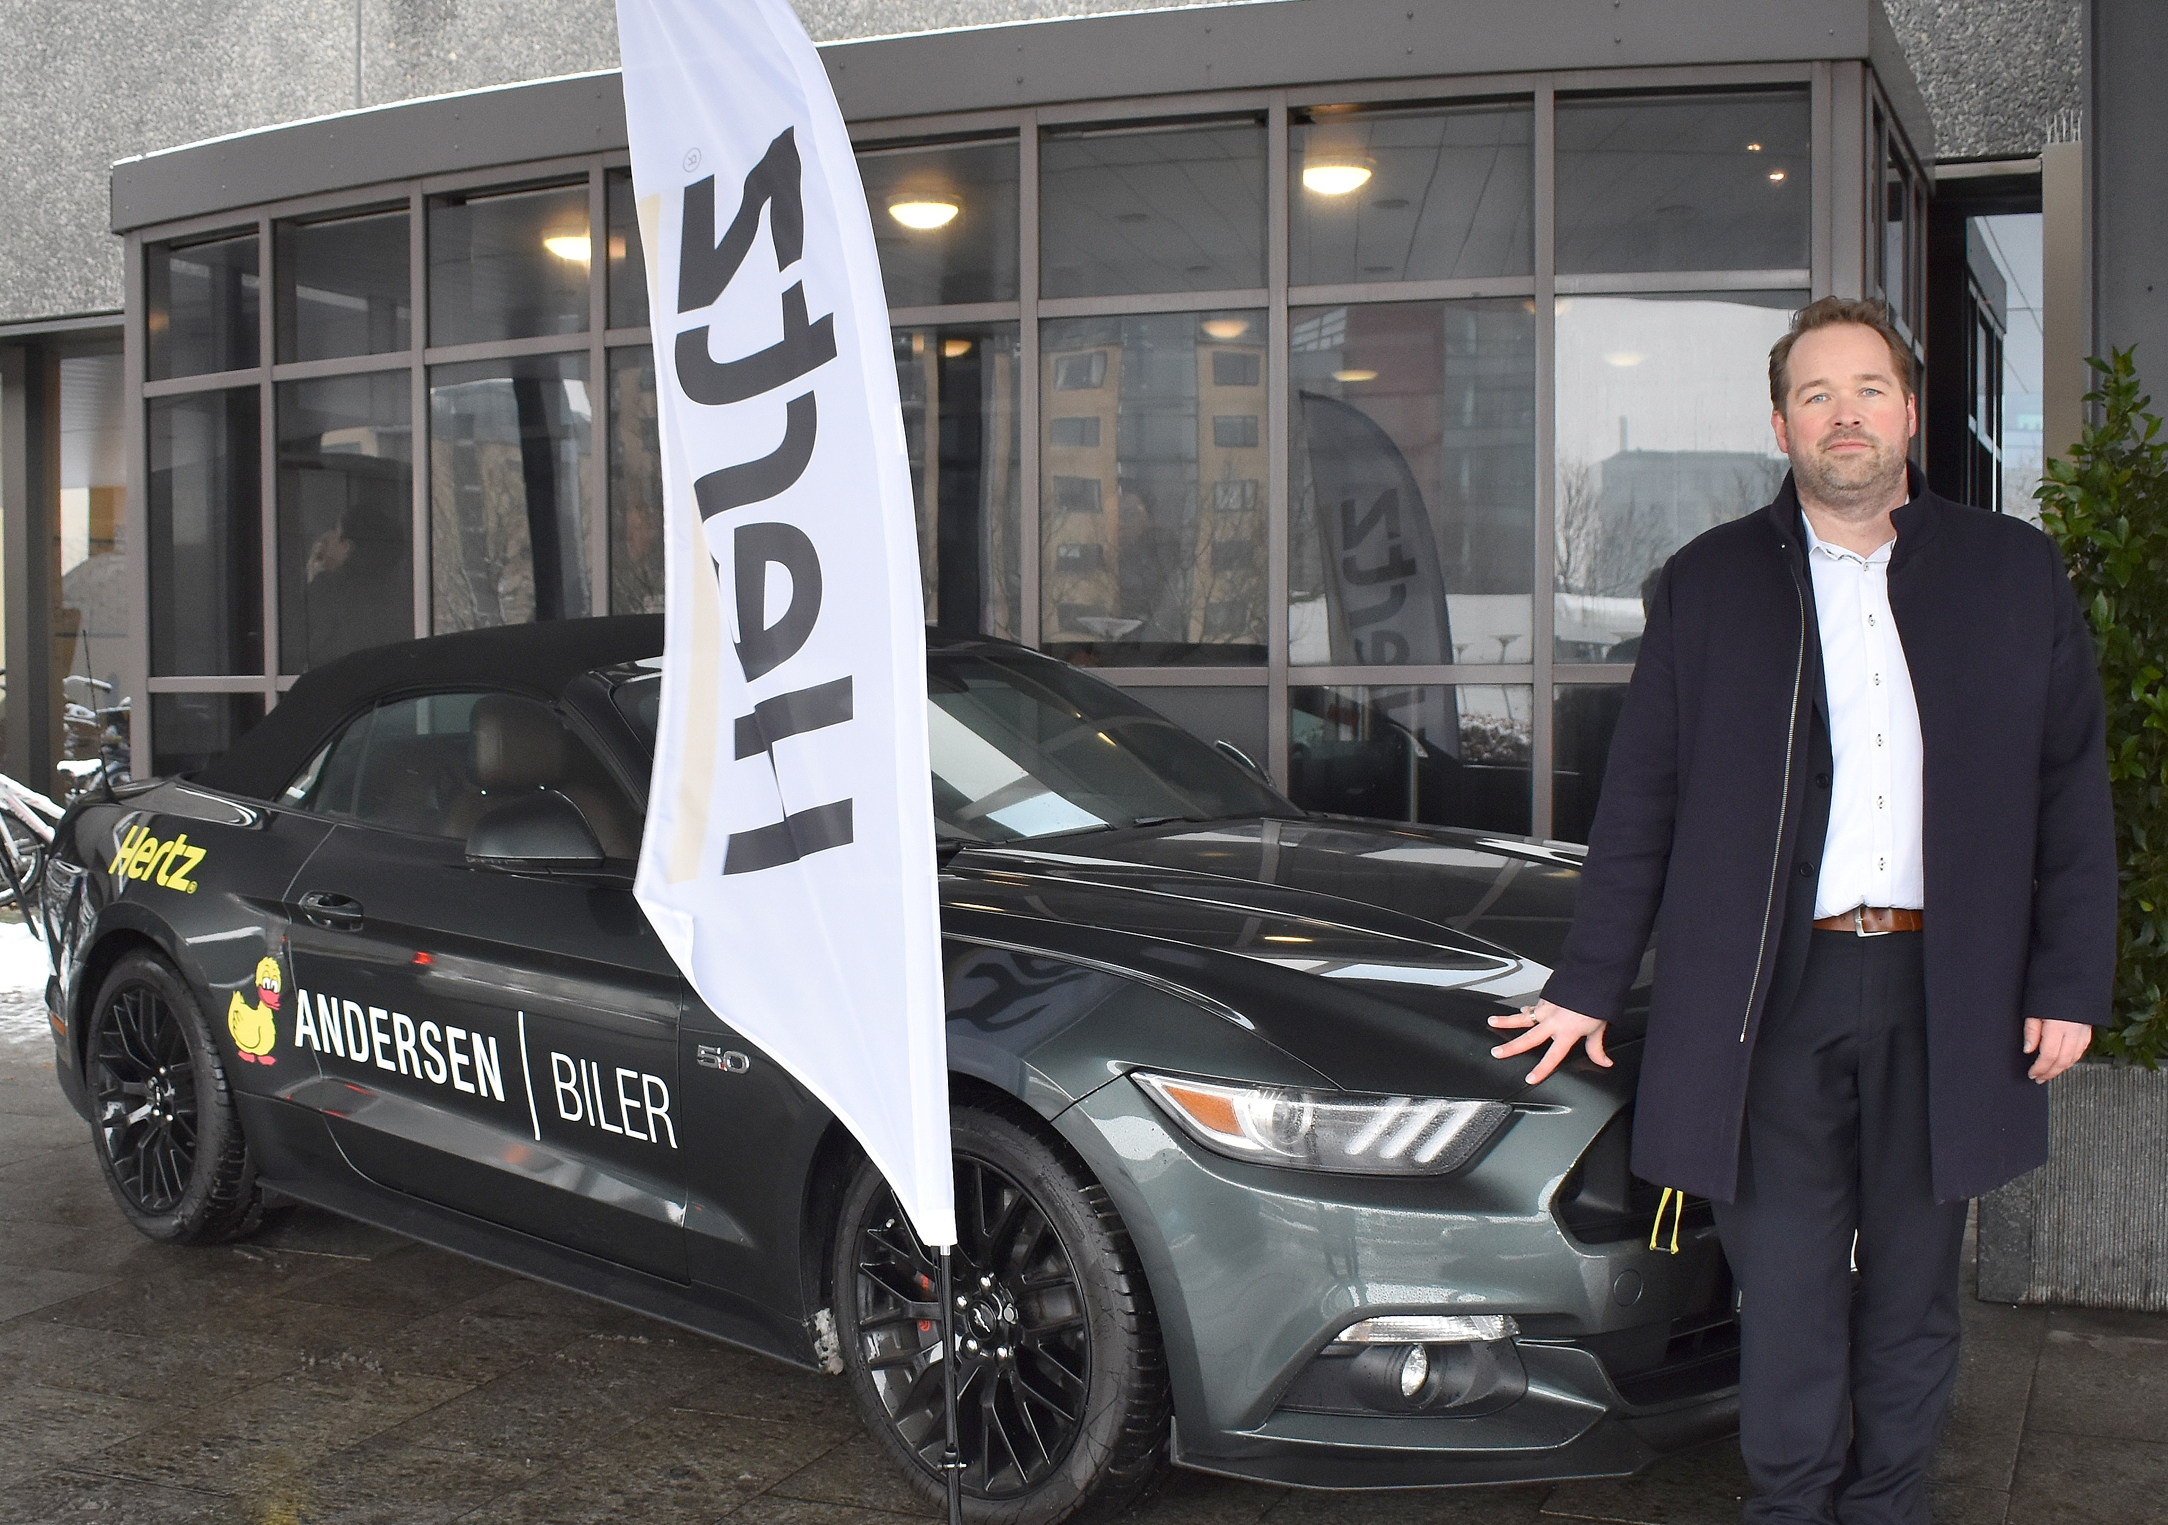 Hertz Biludlejning var også til USA Travel Show, hvor Kasper Renström Østervig, chef for Travel Industry & Commercial, havde medbragt en Ford Mustang. Foto: Preben Pathuel.